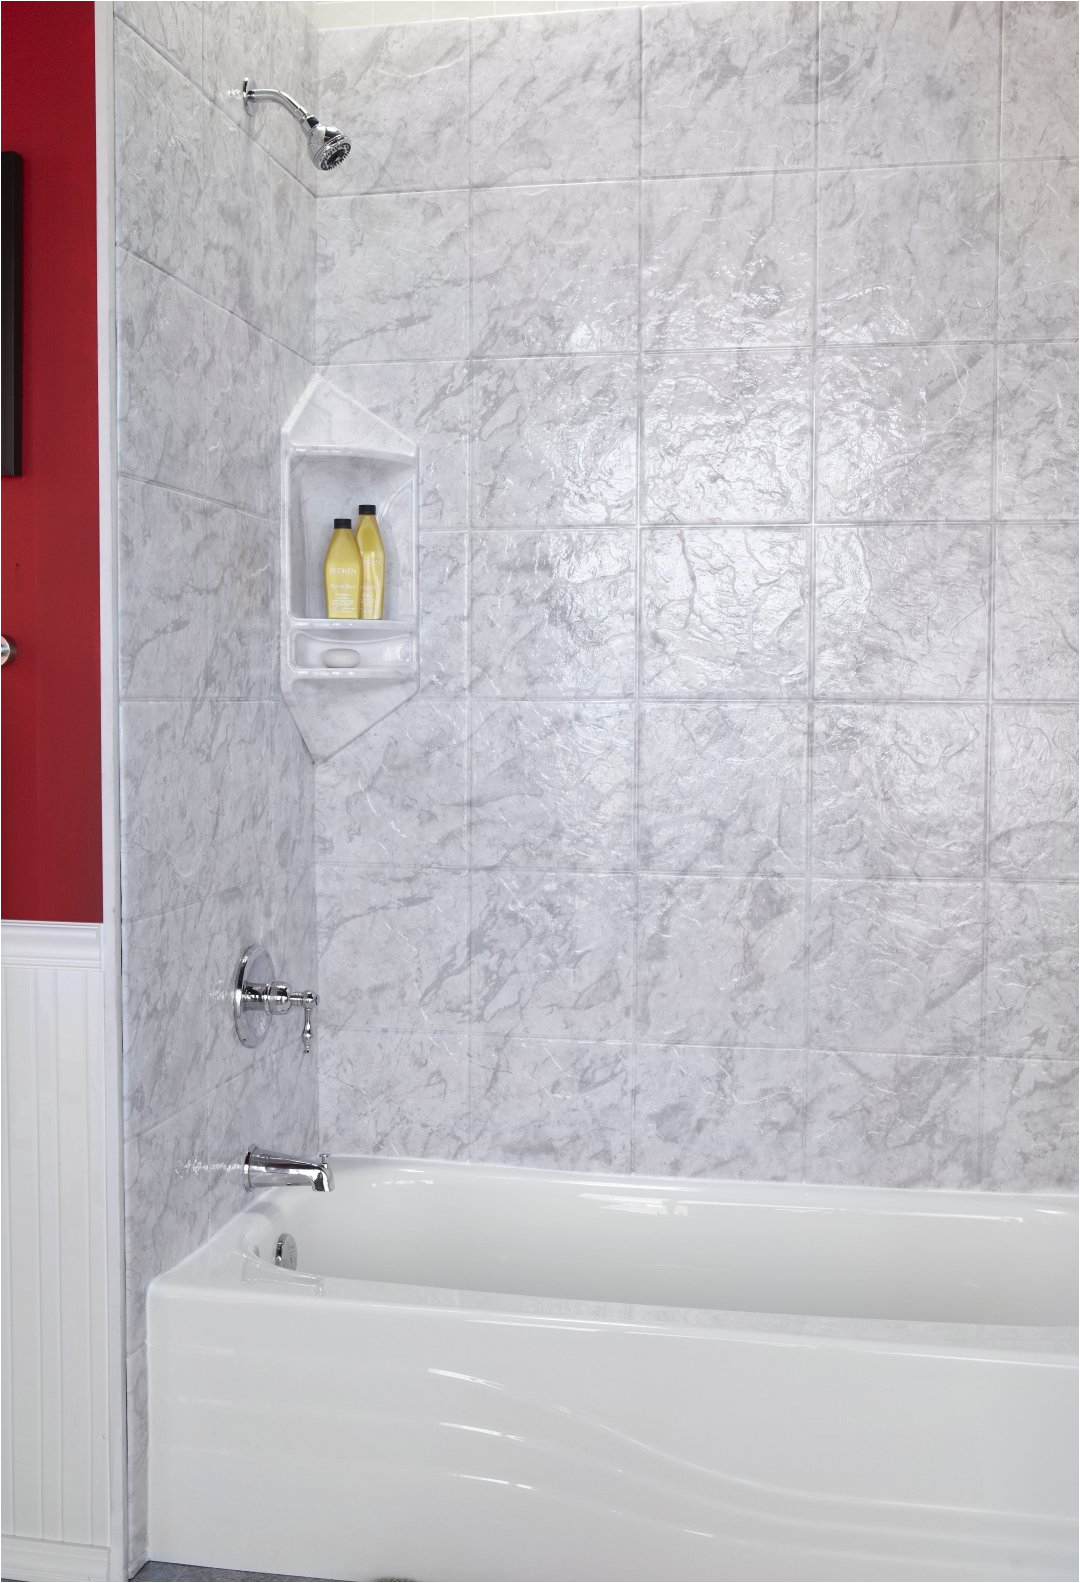 Bathtub Surround or Tile Stone Shower Wall Panels Kits Lowes Tub Surround solid